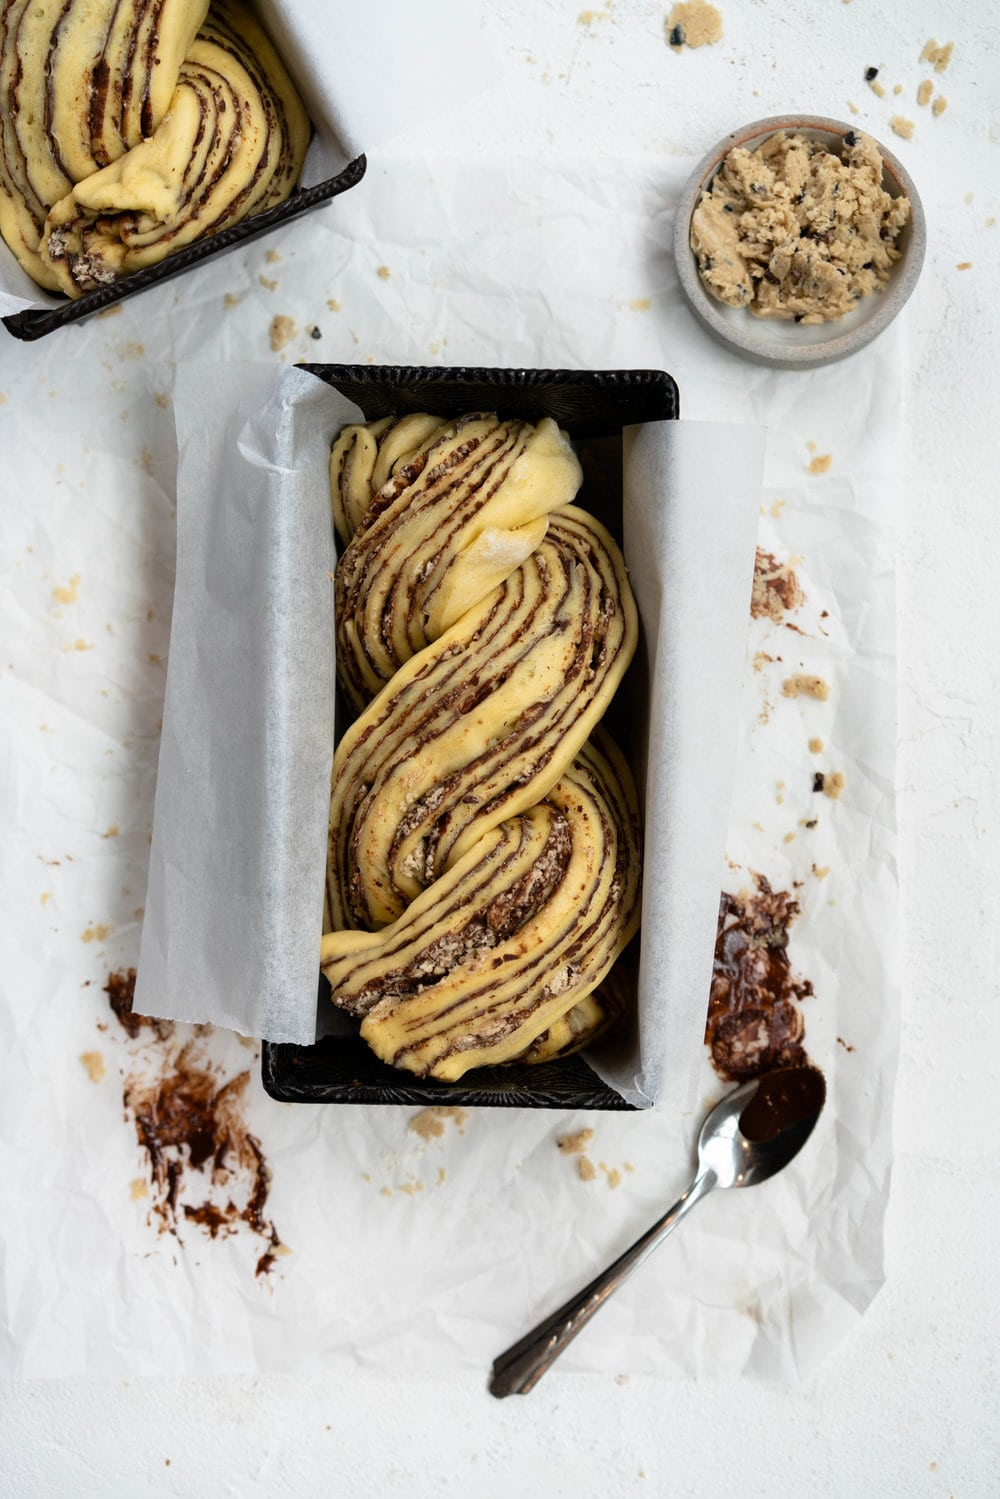 Dark Chocolate, Tahini, and Halva Brioche Babka. Fluffy brioche dough is spread with a dark chocolate tahini filling and sprinkled with halva, then rolled up and turned into the most perfect twisty bread. Perfect for a delicious breakfast or a snack with a coffee. #babka #brioche #tahini #halva